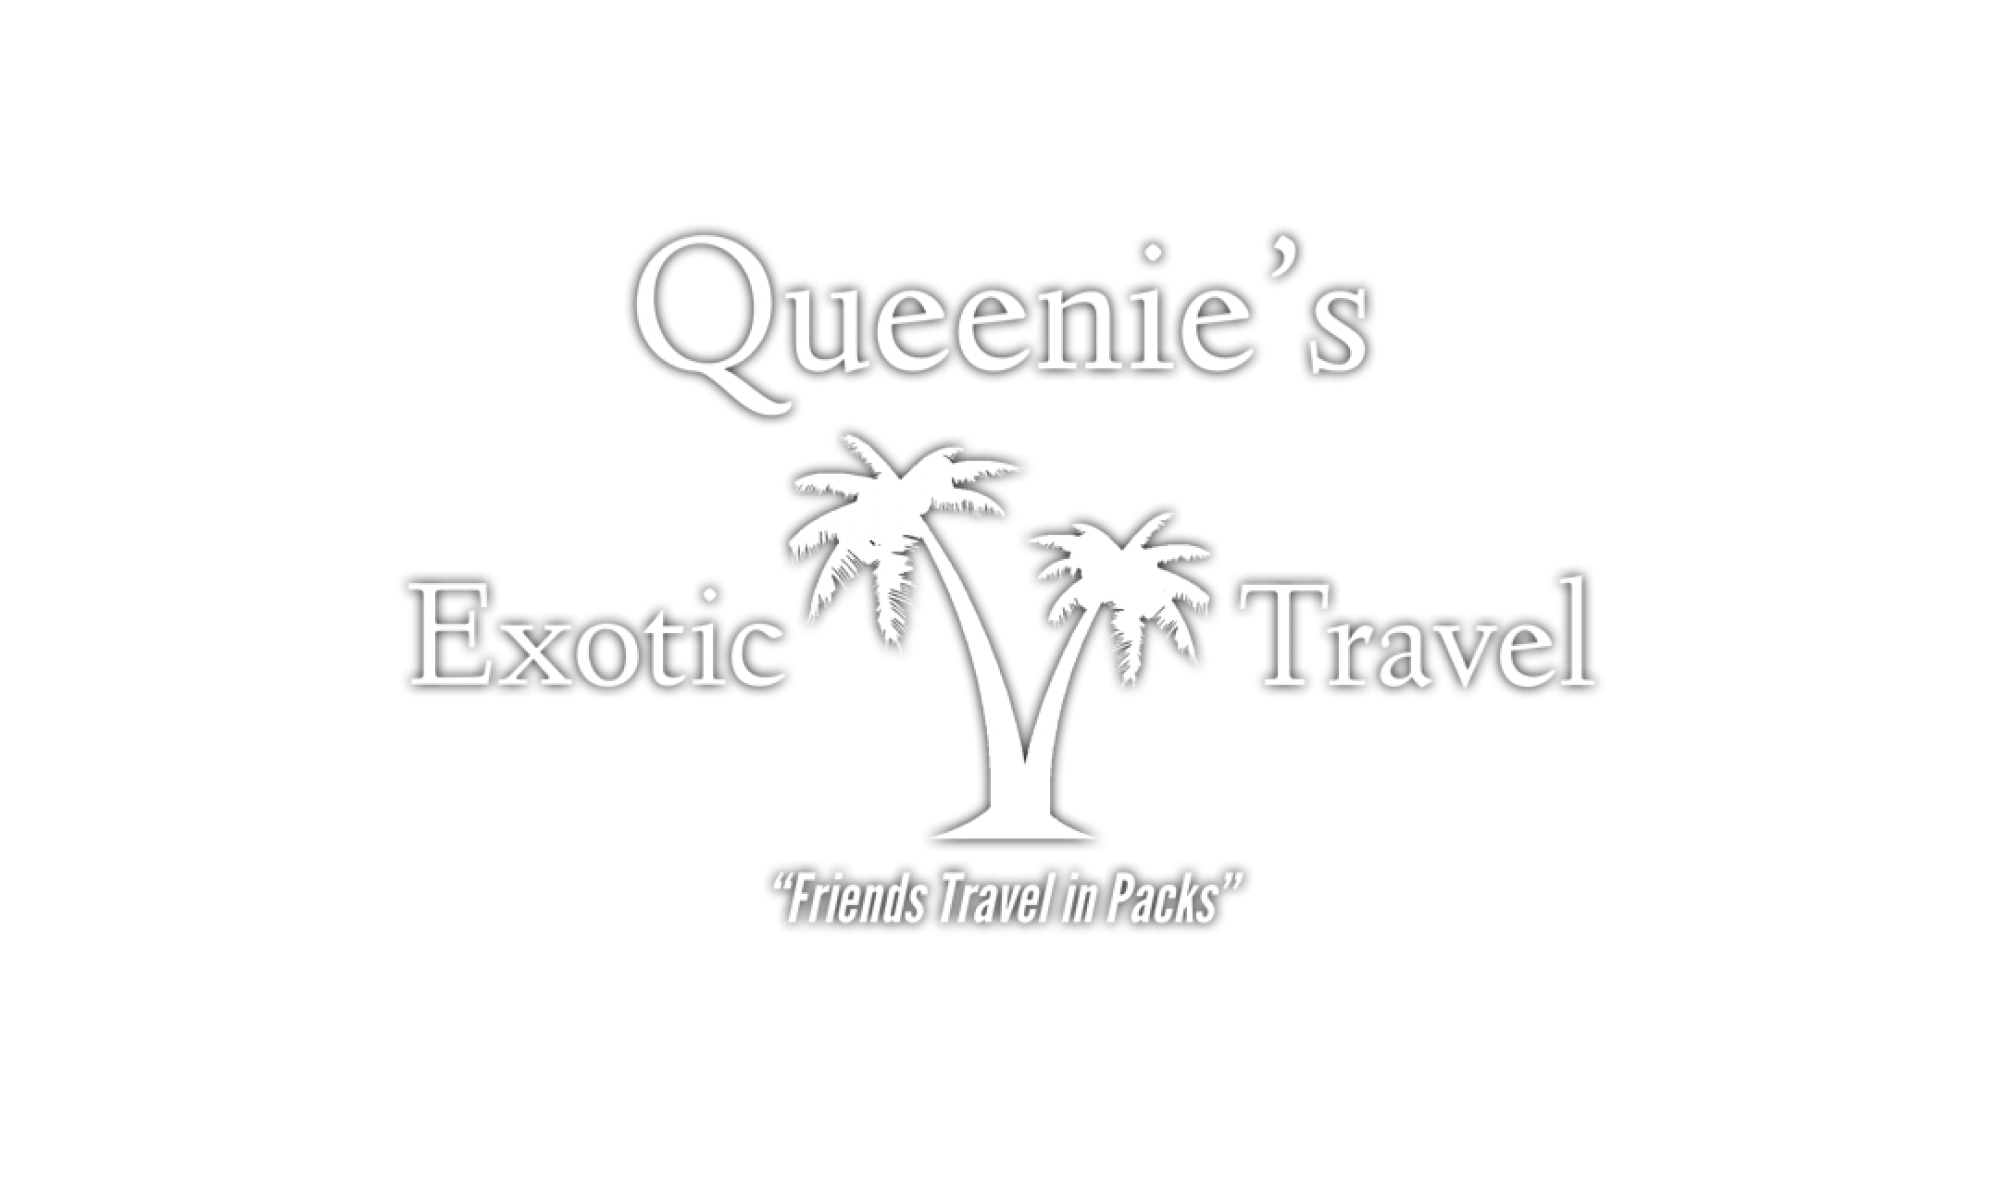 Queenie's Exotic Travel